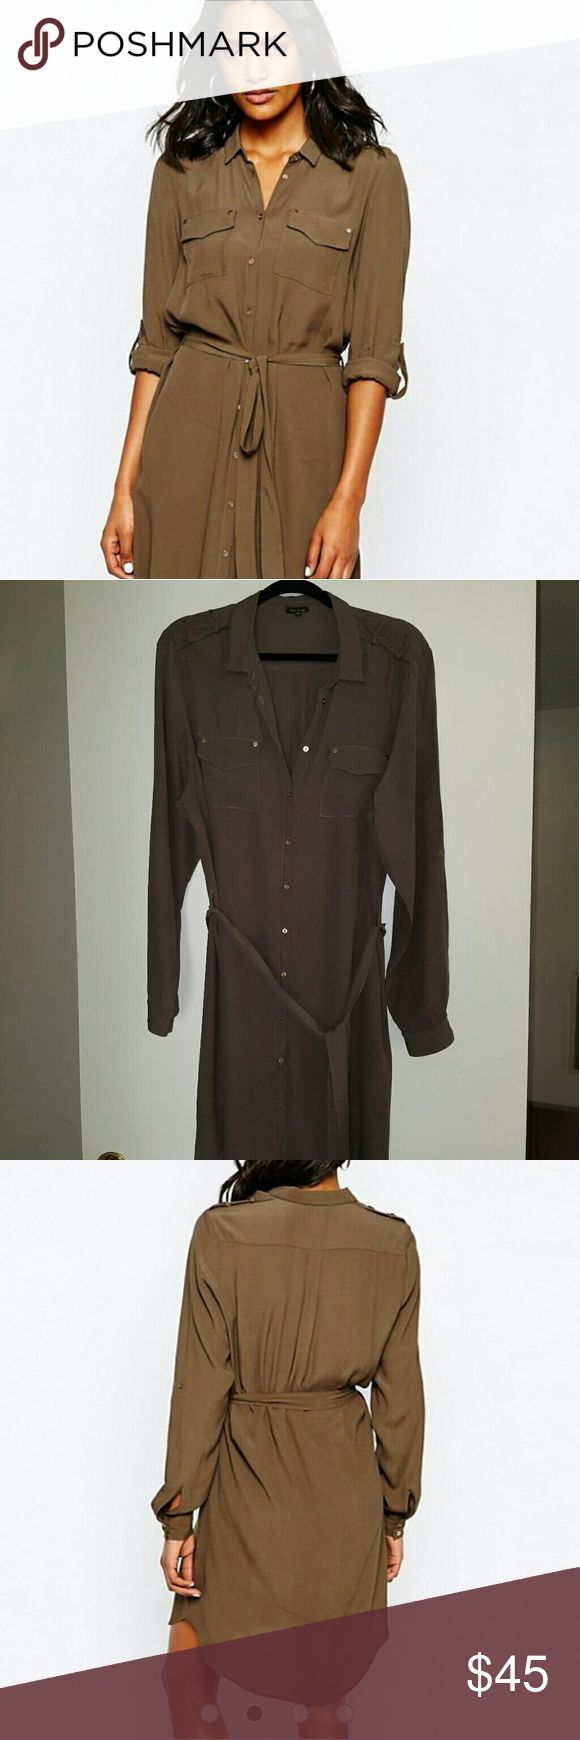 River Island Military Shirt Dress From ASOS.com. ONLY WORN ONCE River Island Dresses Long Sleeve